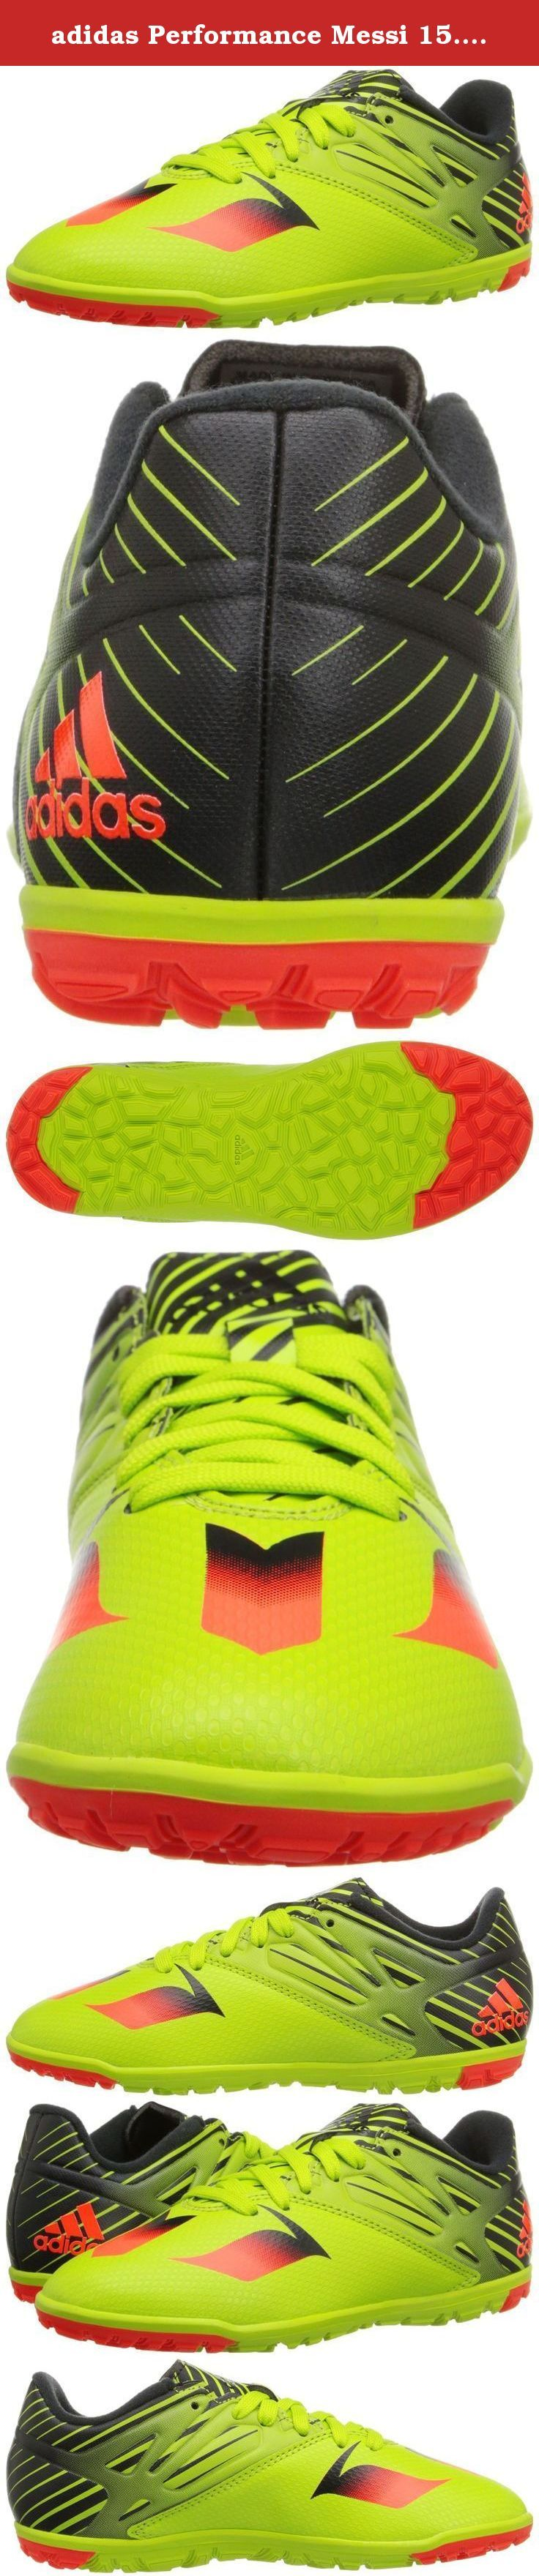 adidas Performance Messi 15.3 TF J Soccer Shoe (Little Kid/Big Kid). Messi never makes a move if it doesn't get him the goal. These junior boys' soccer shoes are made for the player who wants to win like Messi.